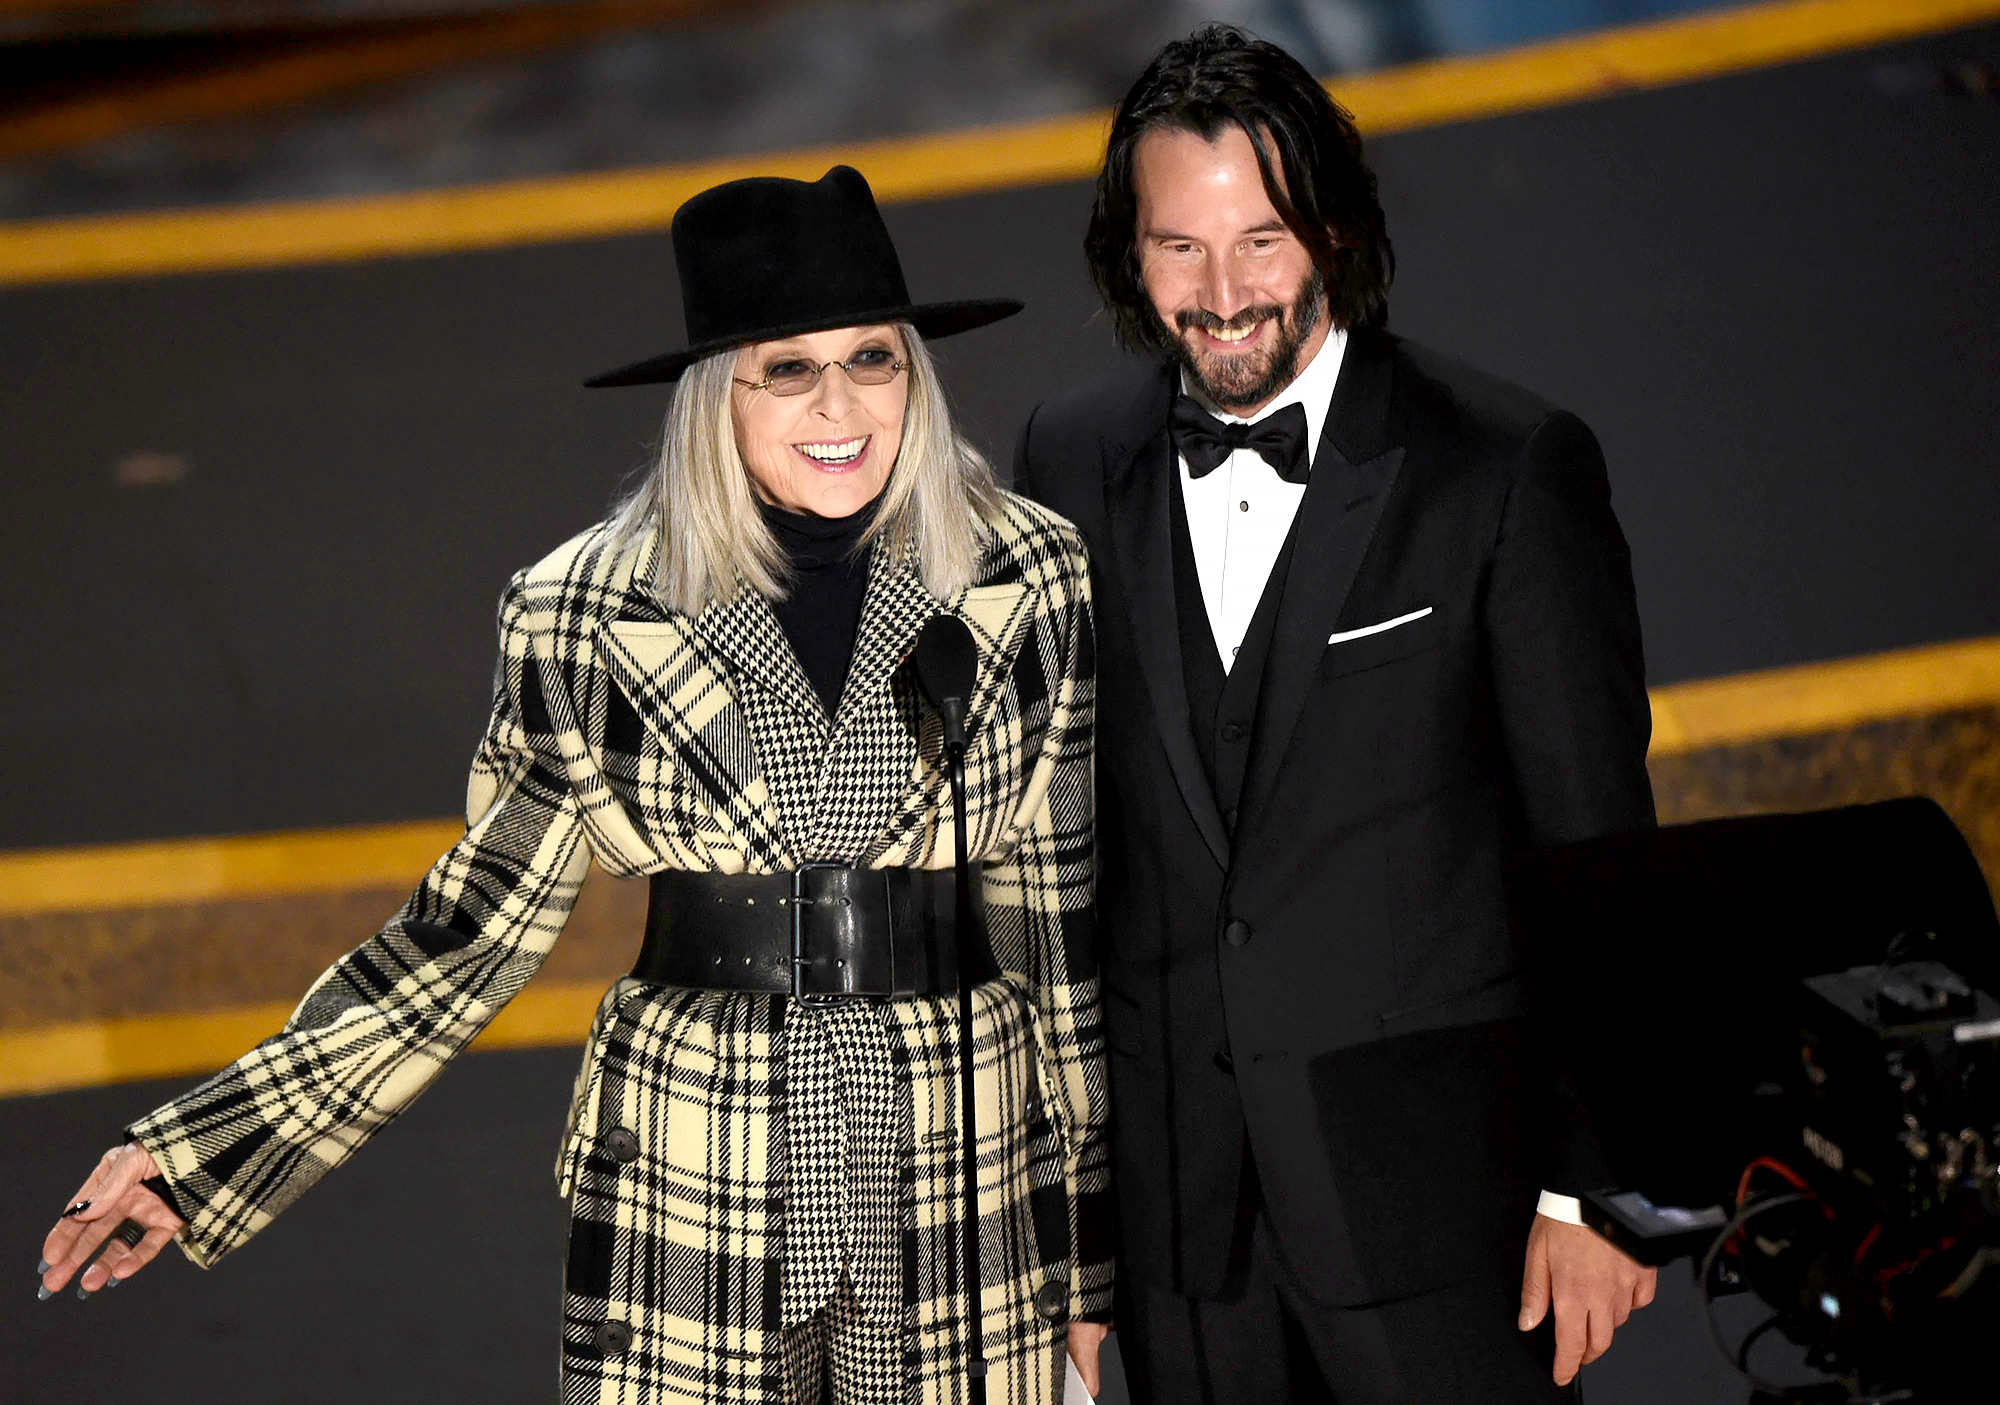 Keanu and Diane Keaton Have 'Something's Gotta Give' Reunion